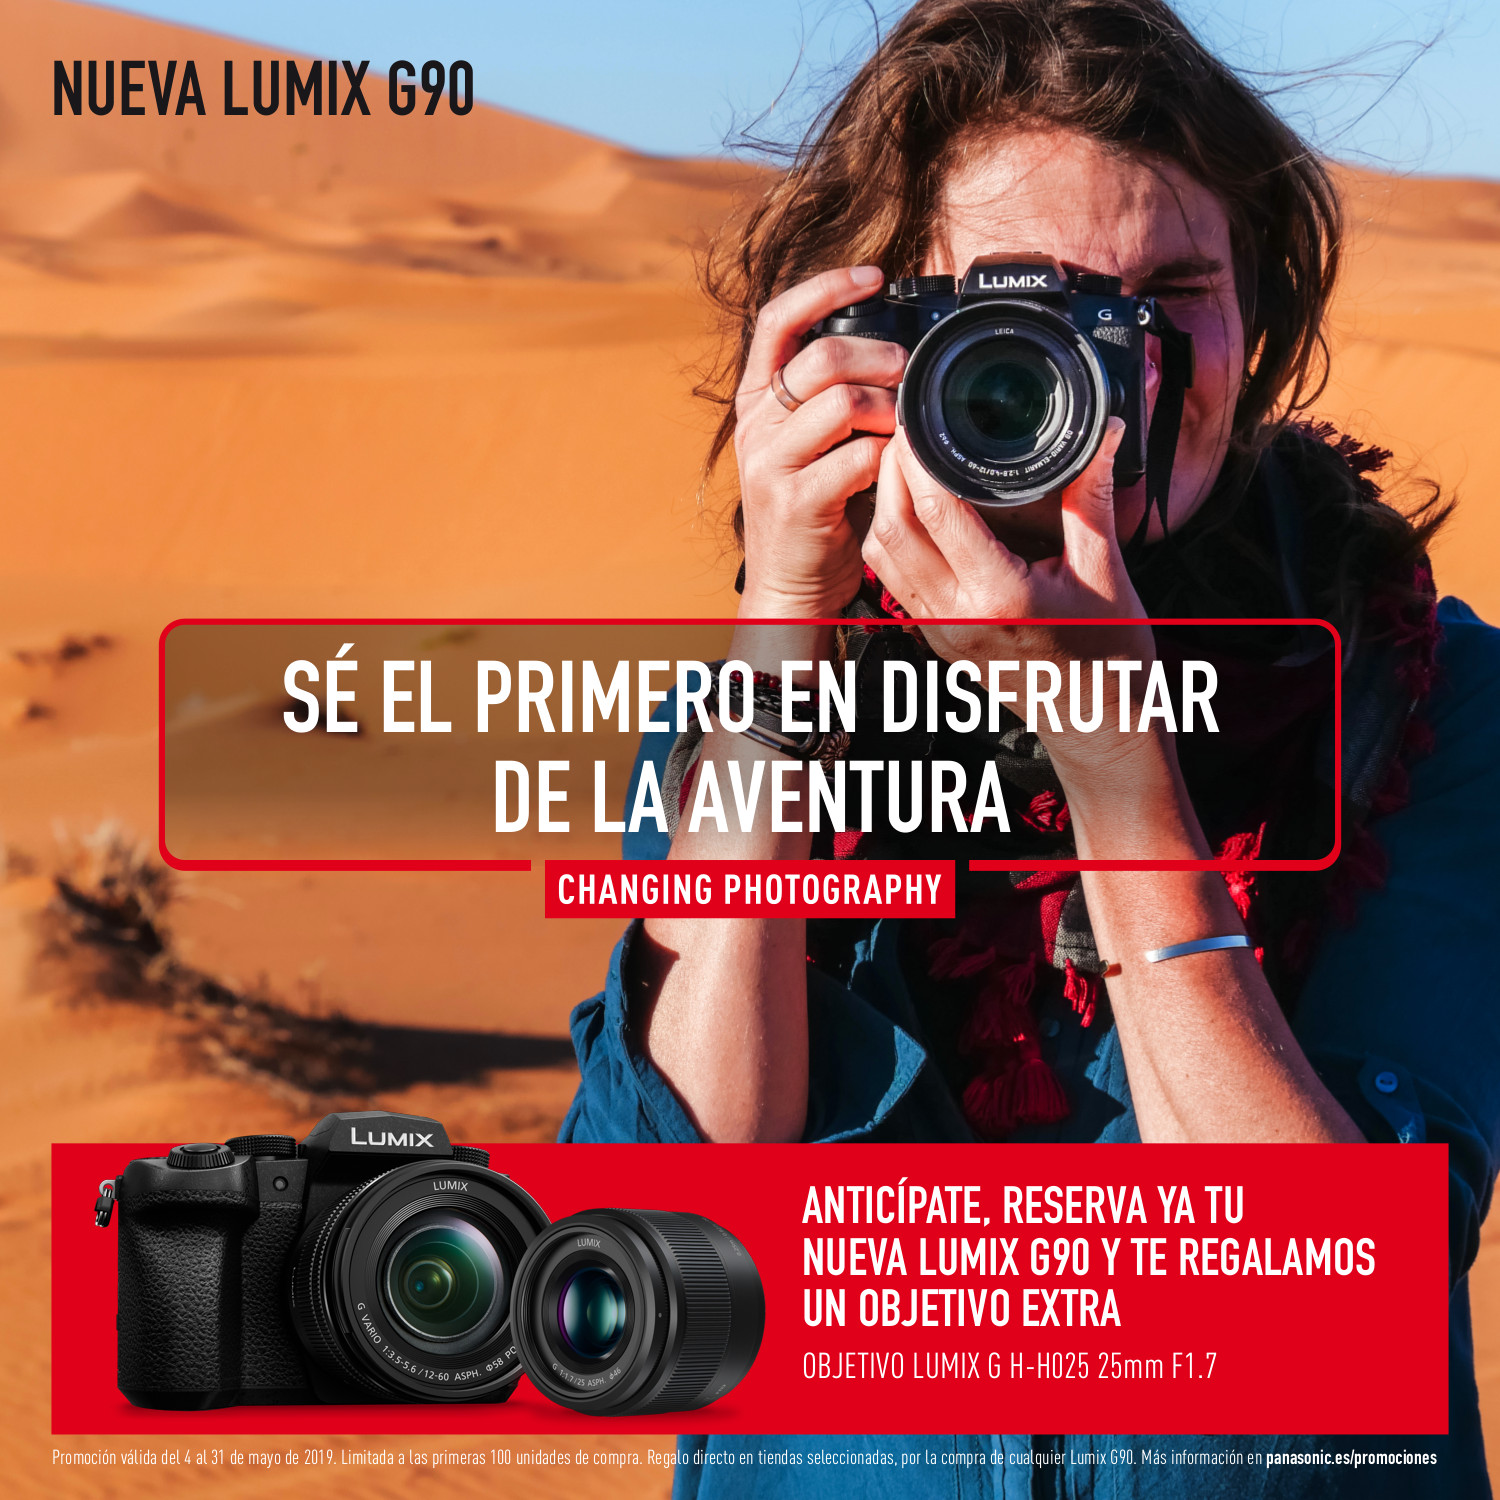 Pre-order Lumix G90: bases legales